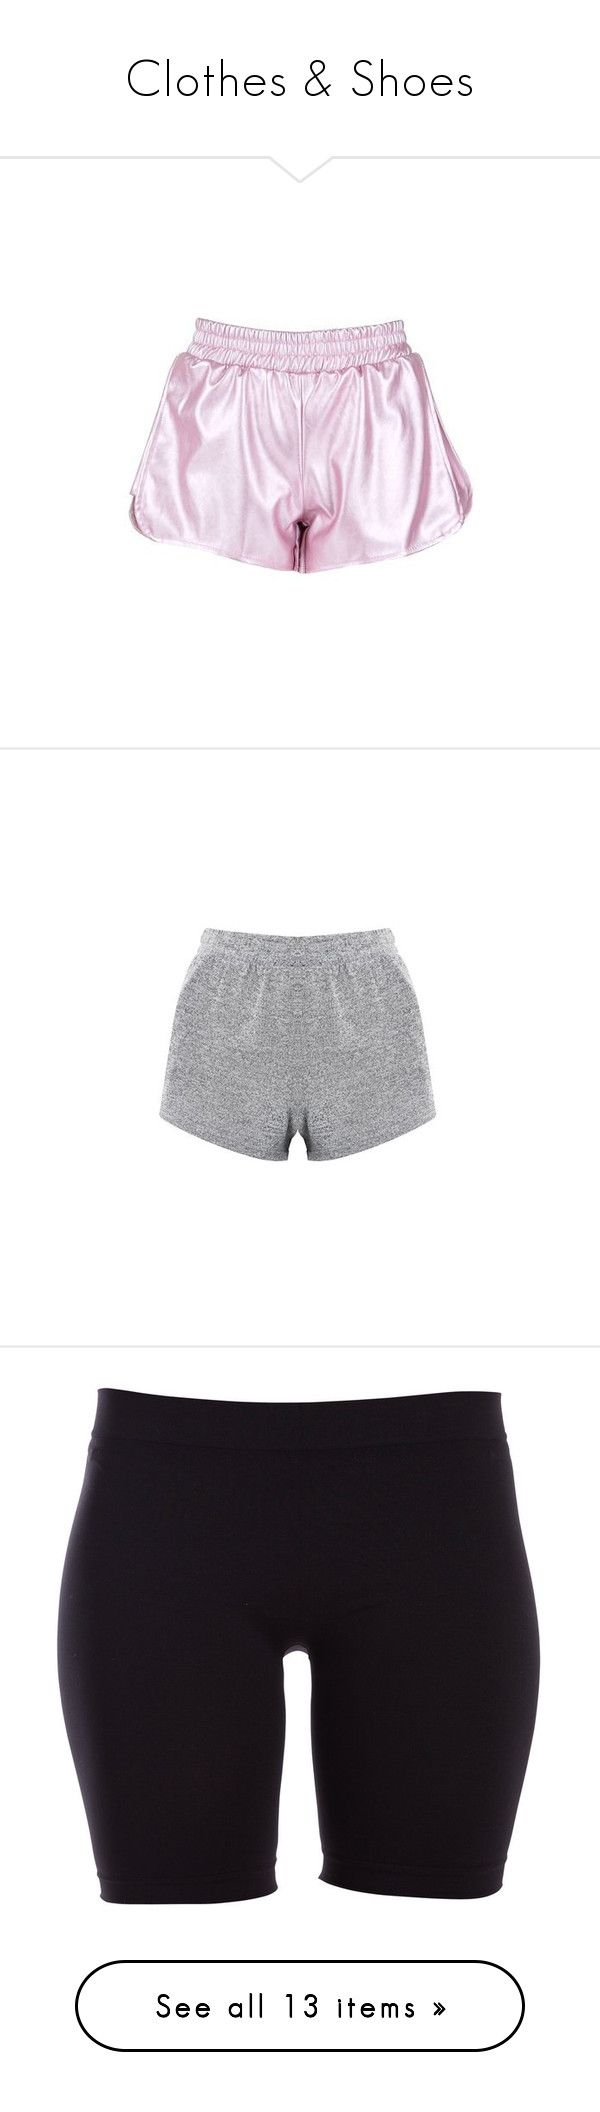 """""""Clothes & Shoes"""" by stxxlight ❤ liked on Polyvore featuring shorts, bottoms, pants, pink, faux-leather shorts, pink shorts, vegan leather shorts, leather look shorts, activewear and activewear shorts"""